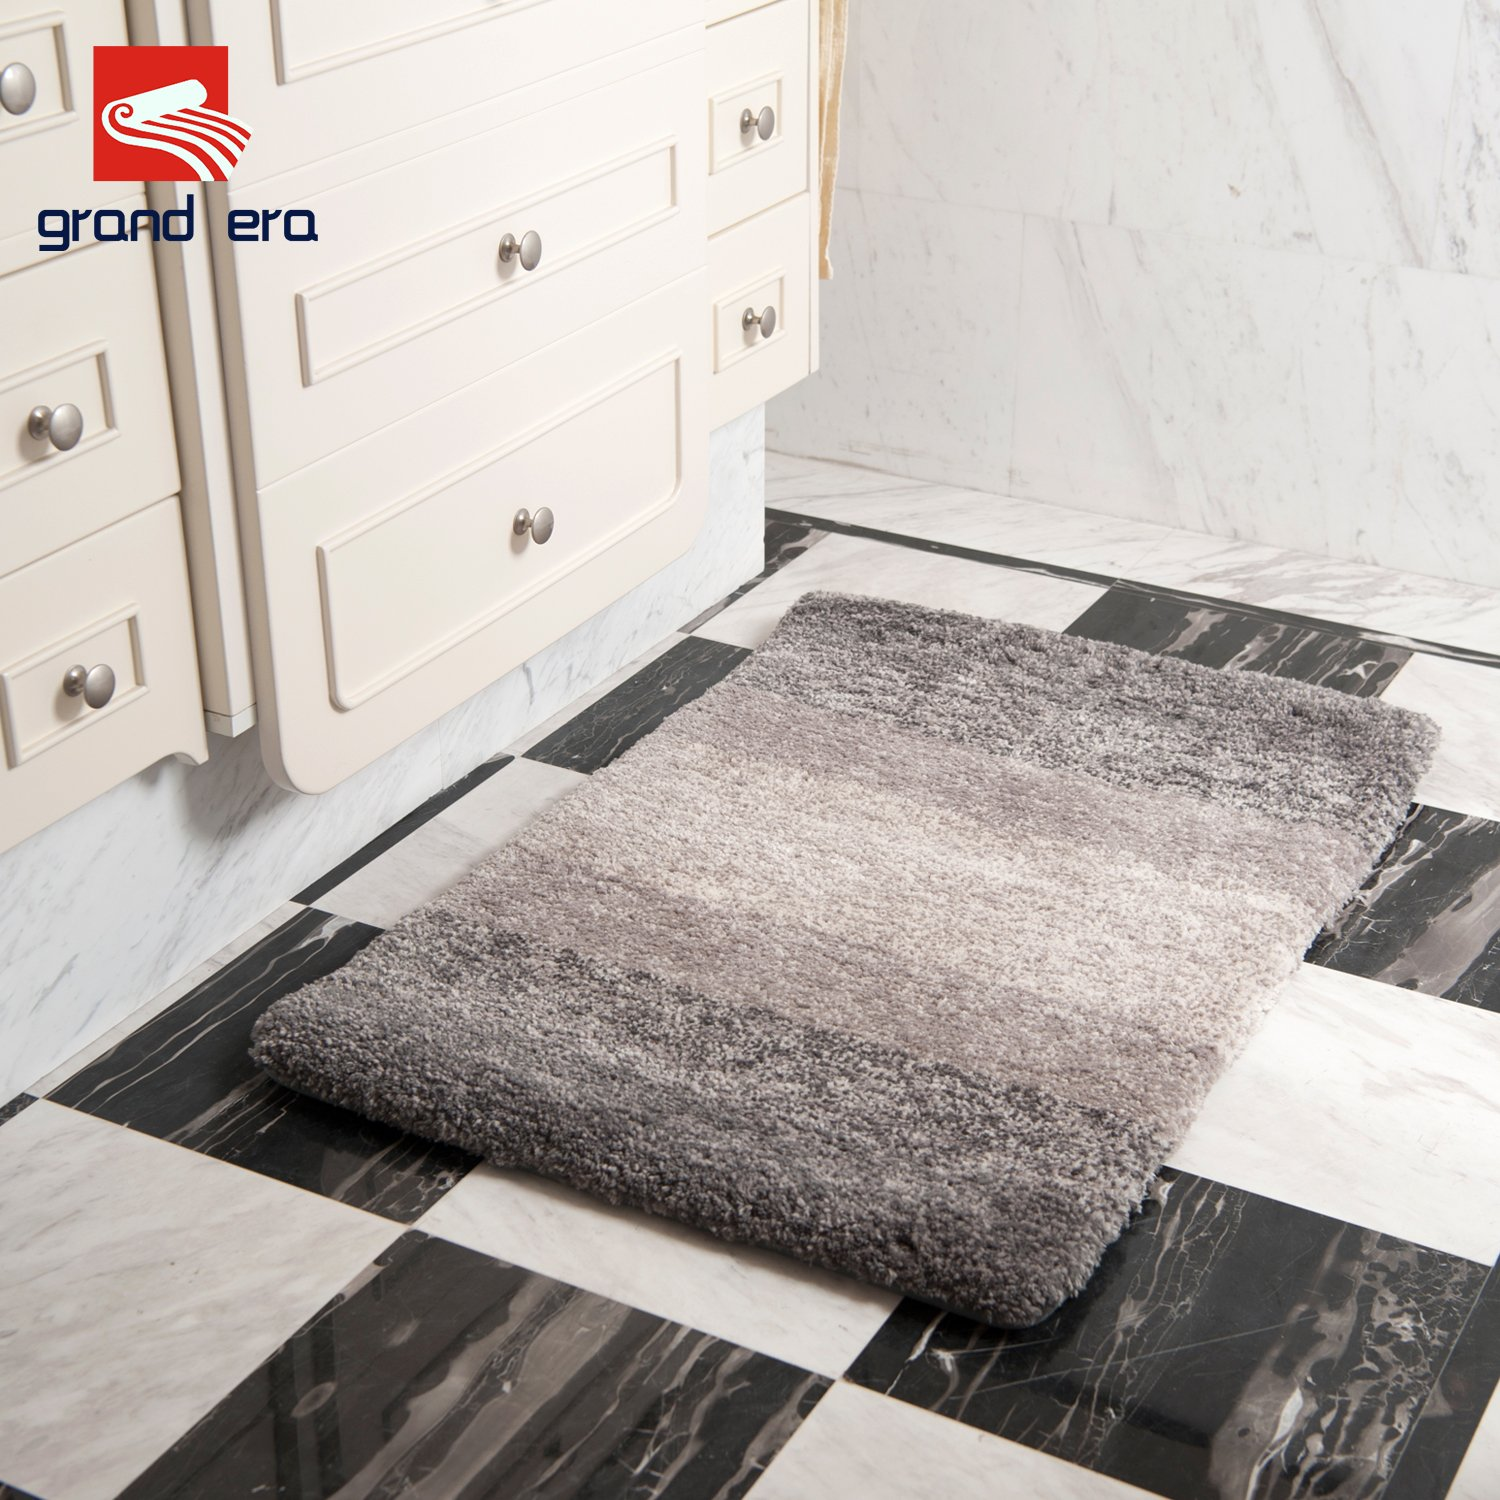 Water Absorbent GRAND ERA Luxury Extra Thick Microfiber Bath Mat Non-Slip Antibacterial Bathroom Rug Perfect for Bedroom and Bathroom Coffee 24 x 36 Inches